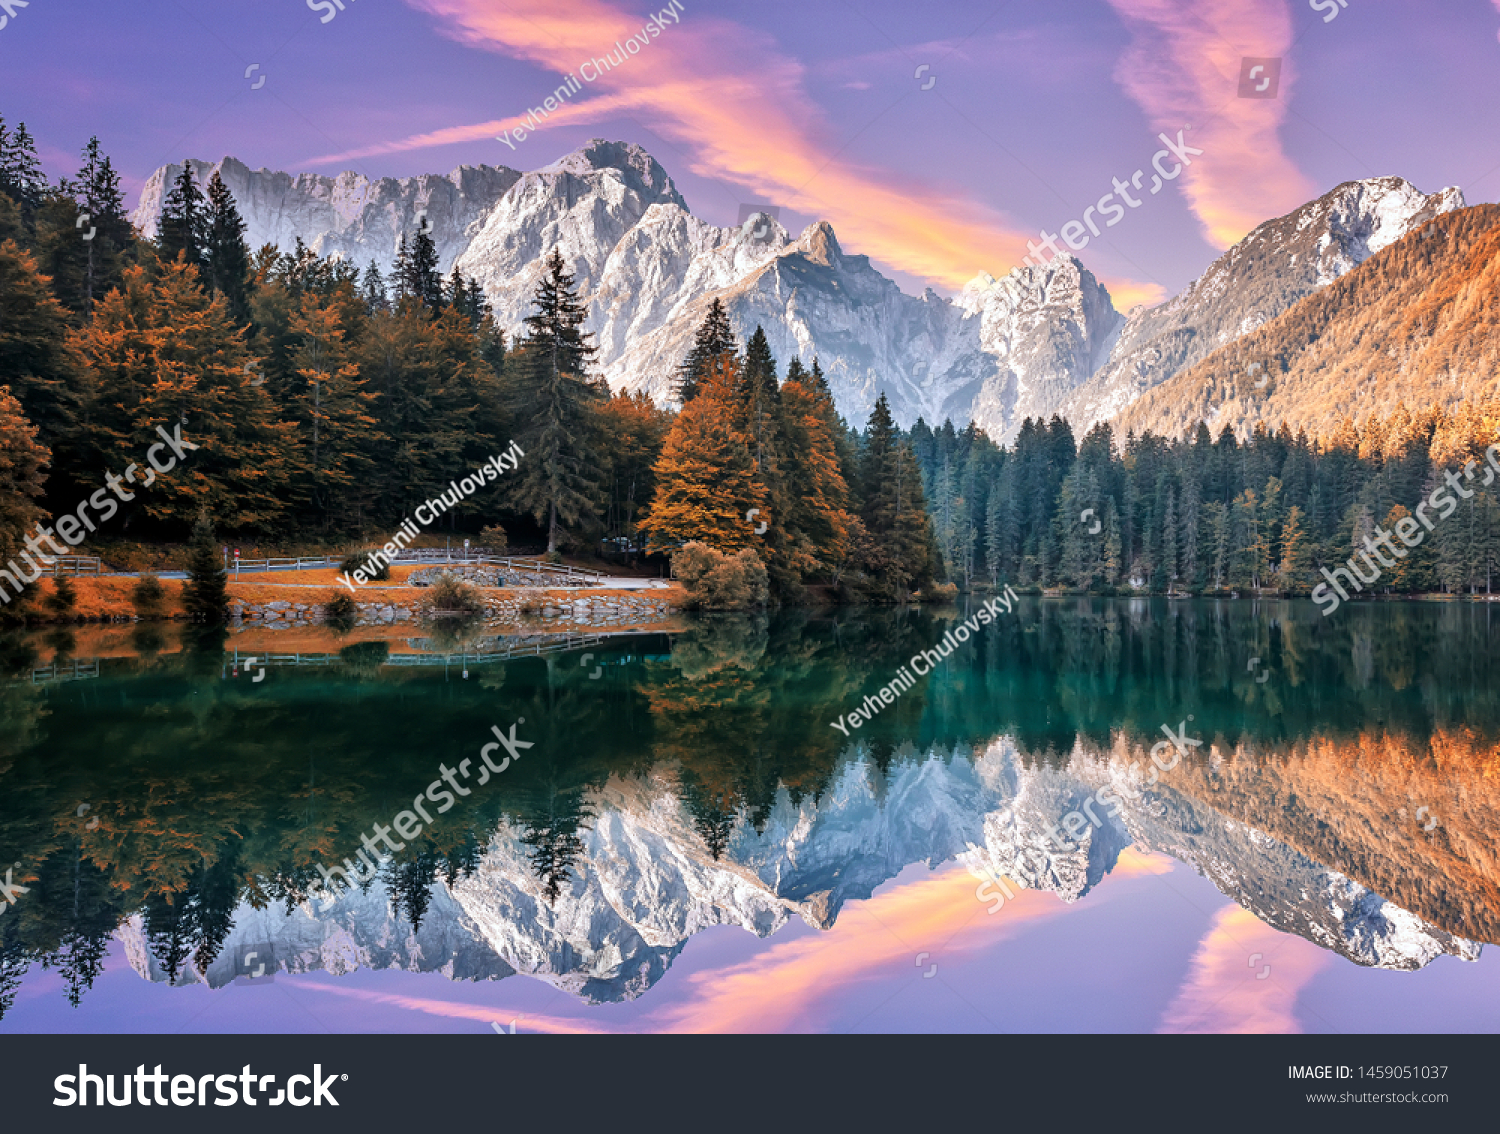 Impressive Autumn landscape during sunset.  The Fusine Lake in front of the Mongart under sunlight. Amazing sunny day on the mountain lake. concept of an ideal resting place. Creative image. #1459051037